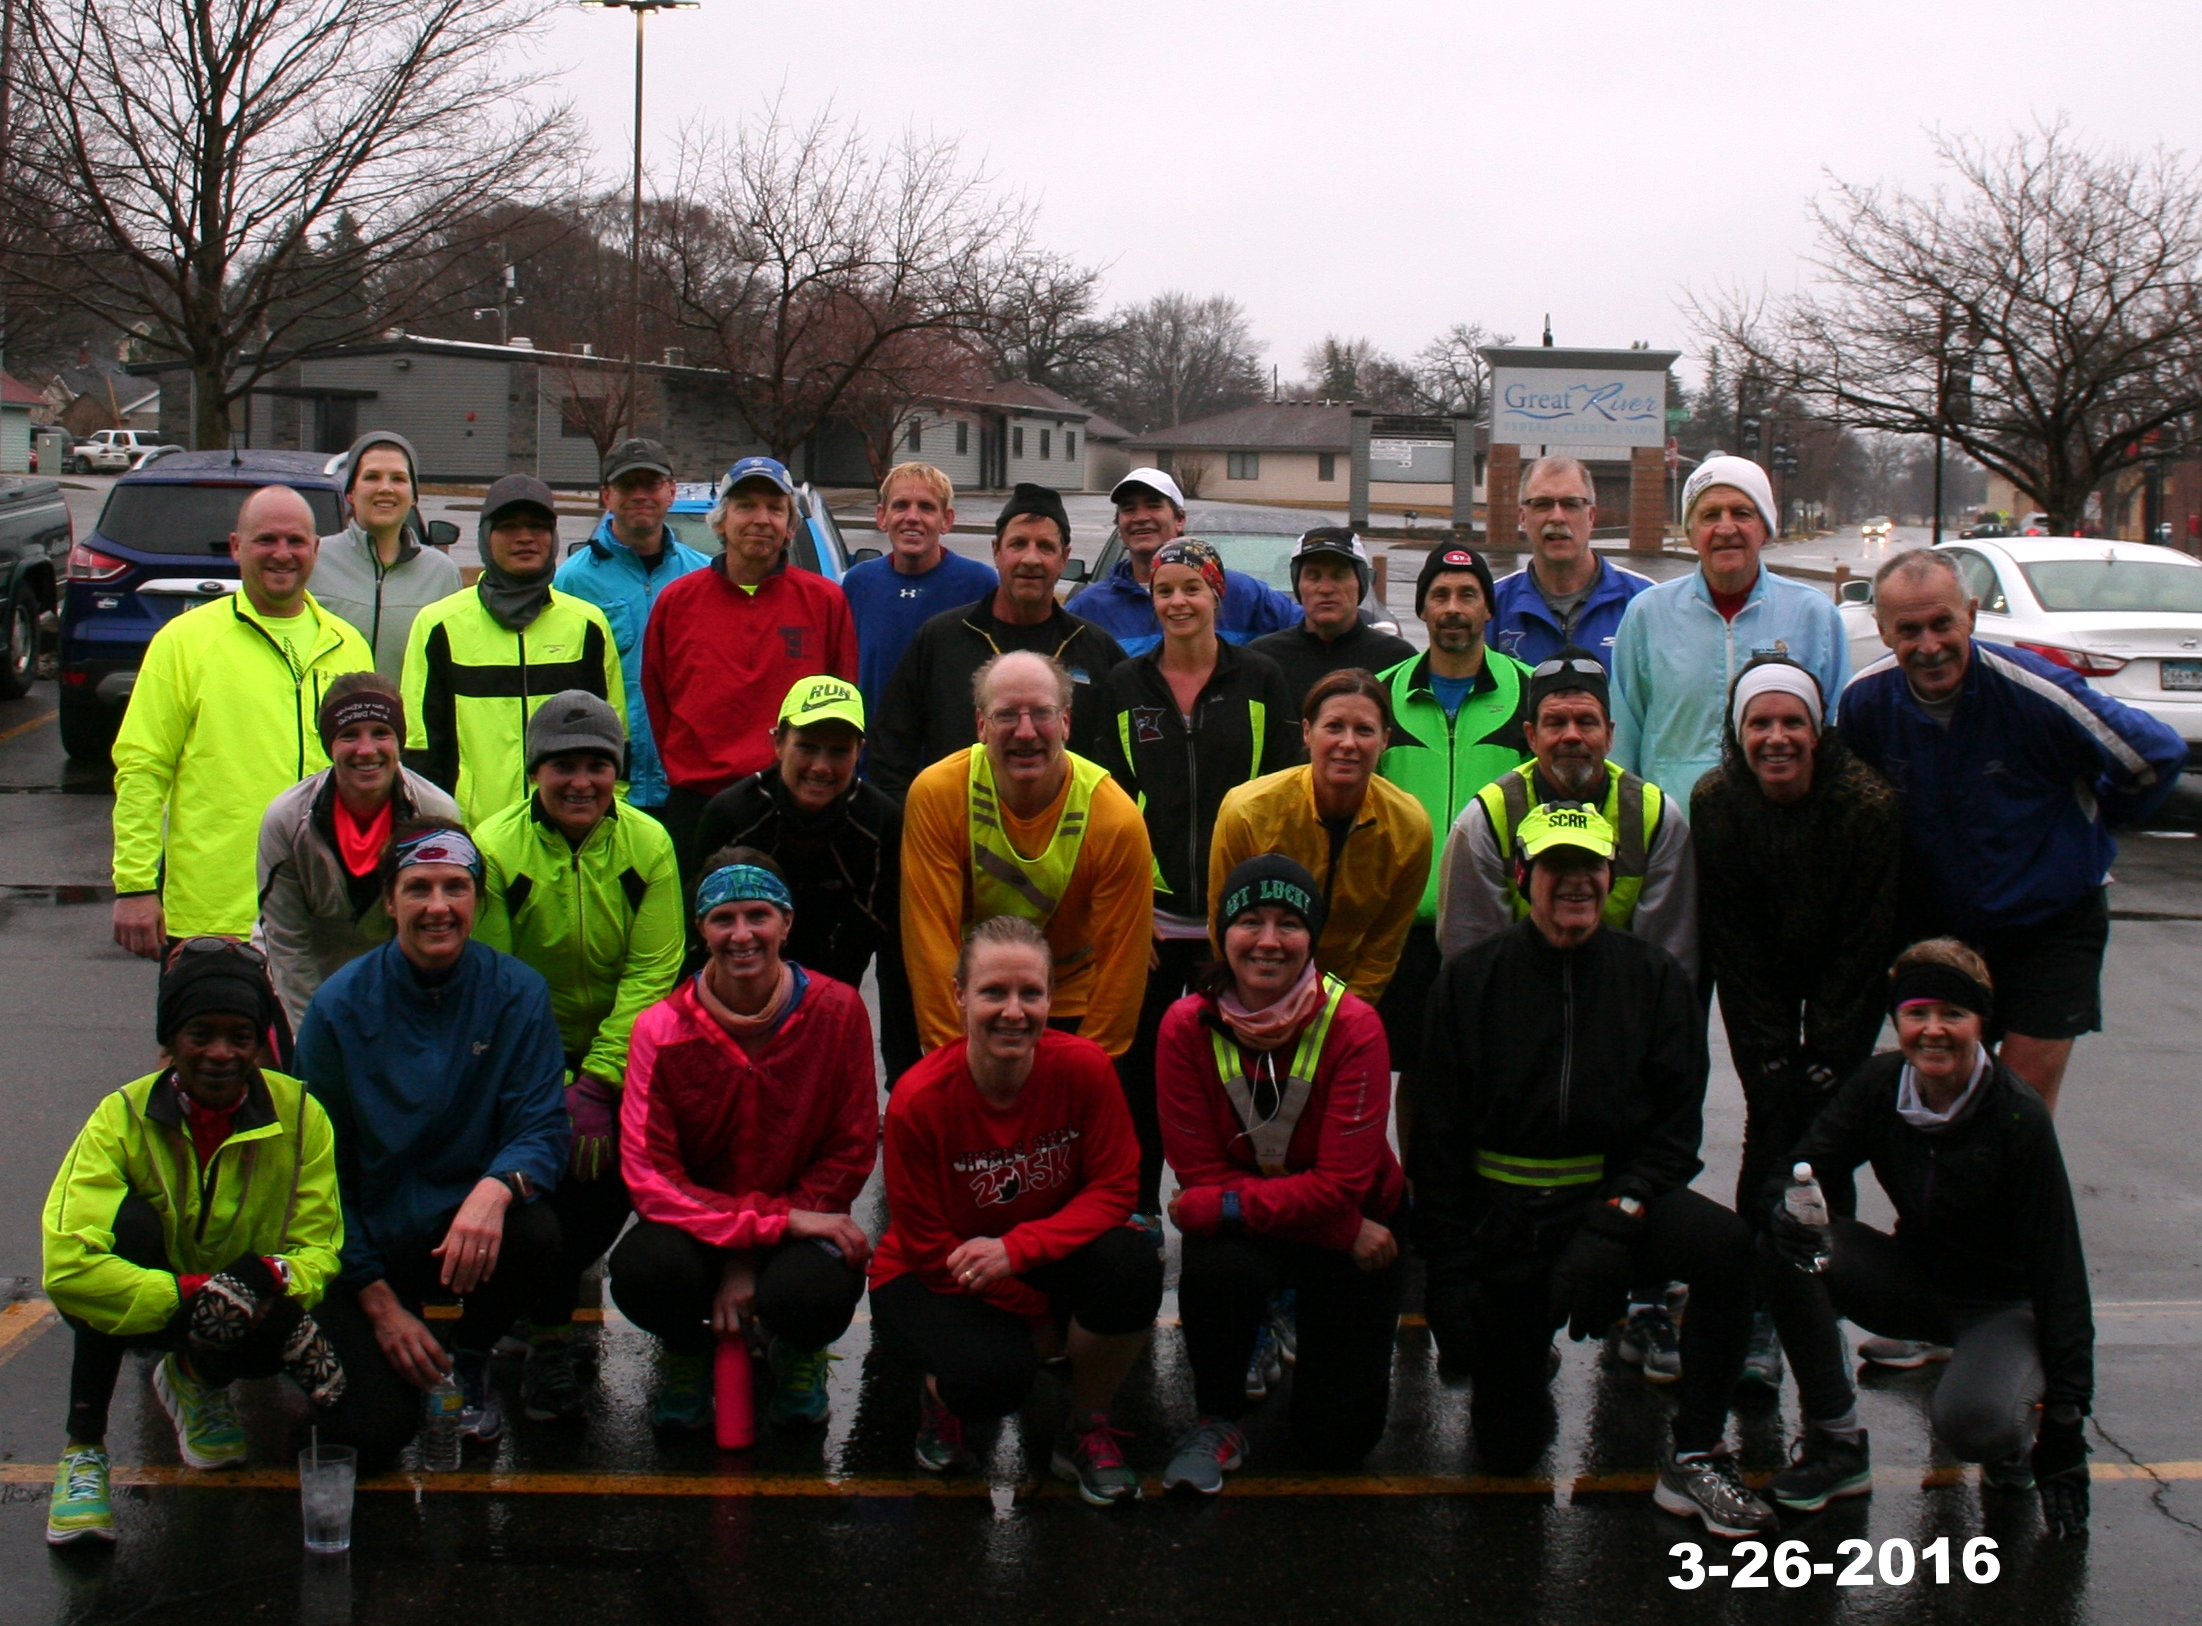 Breakfast Run 3-26-2016